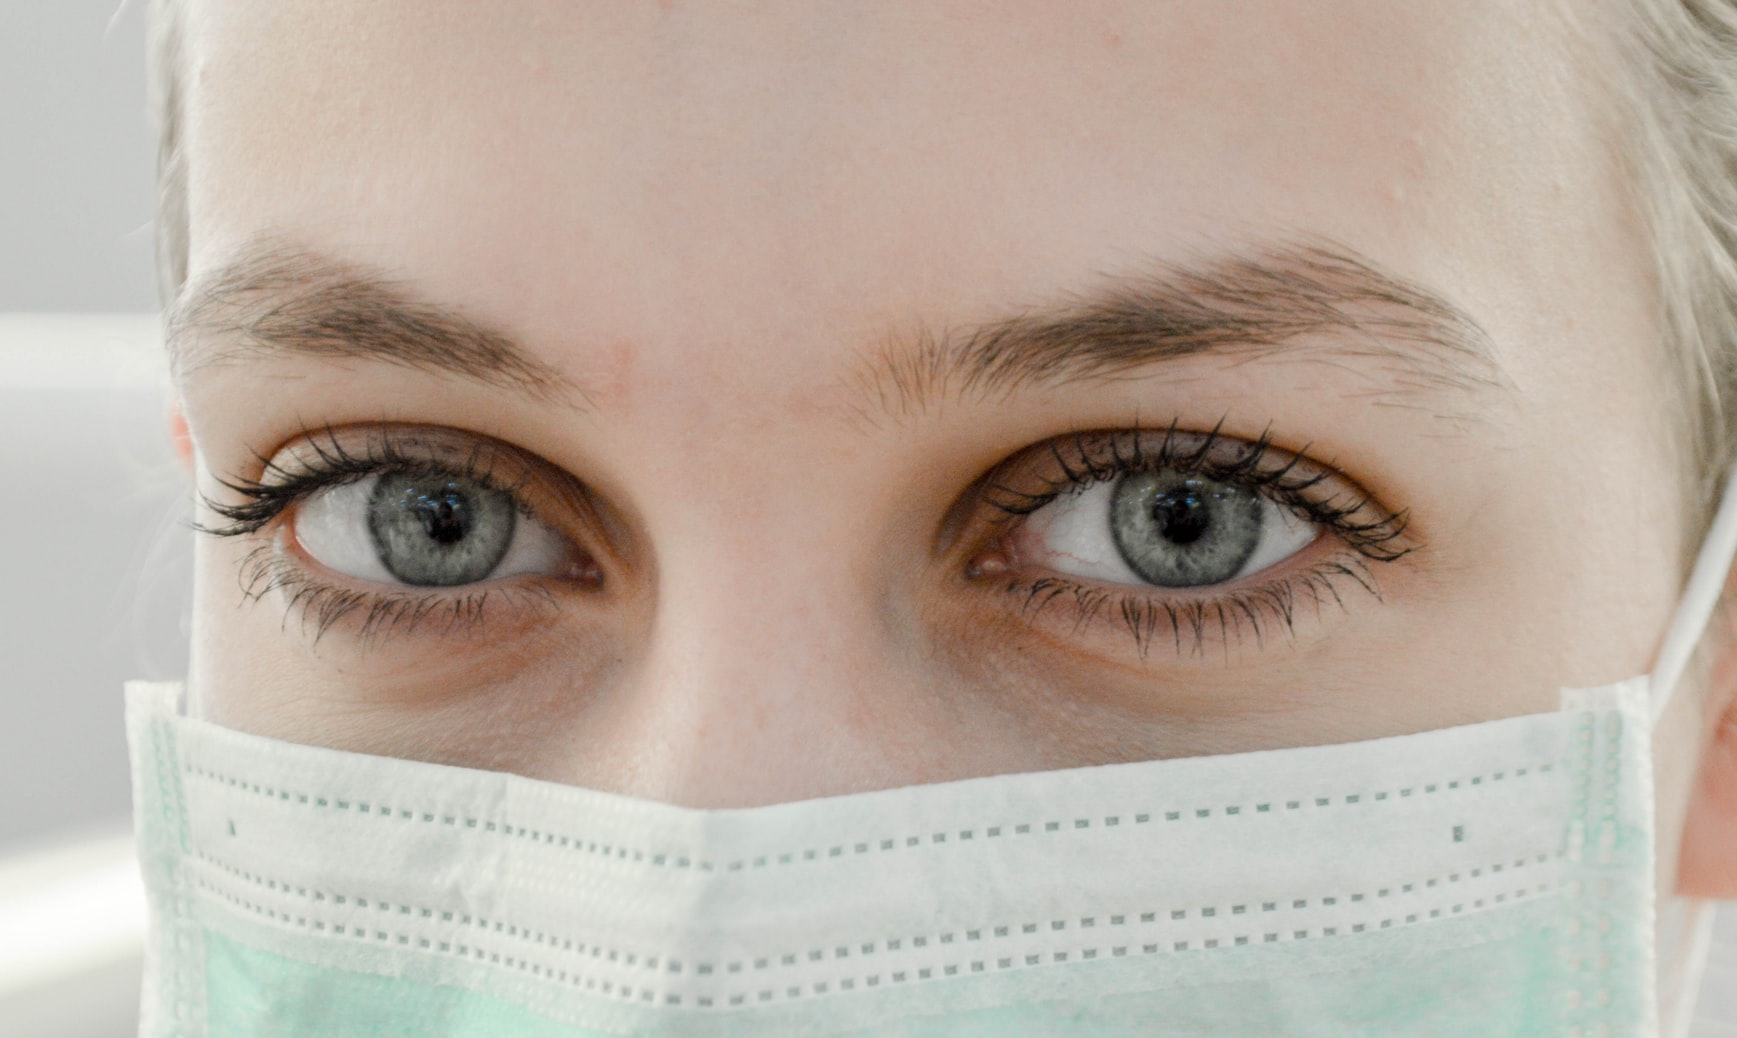 Closeup photo of woman with blue eyes wearing surgical mask